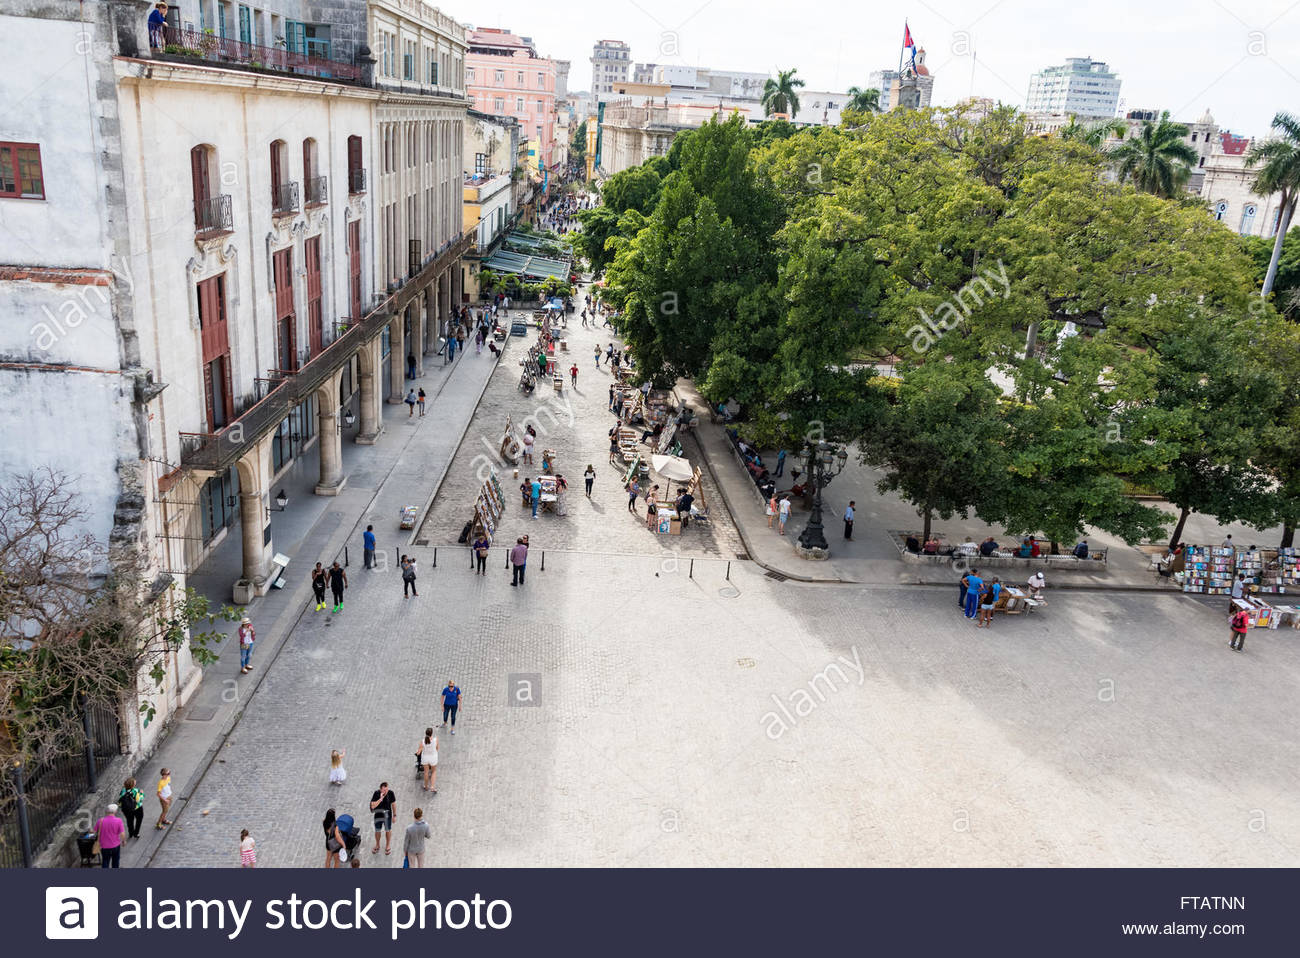 Old Havana Plaza de Armas or Book Market aerial view: Tourists buying painting and books at antiquities stands - Stock Image